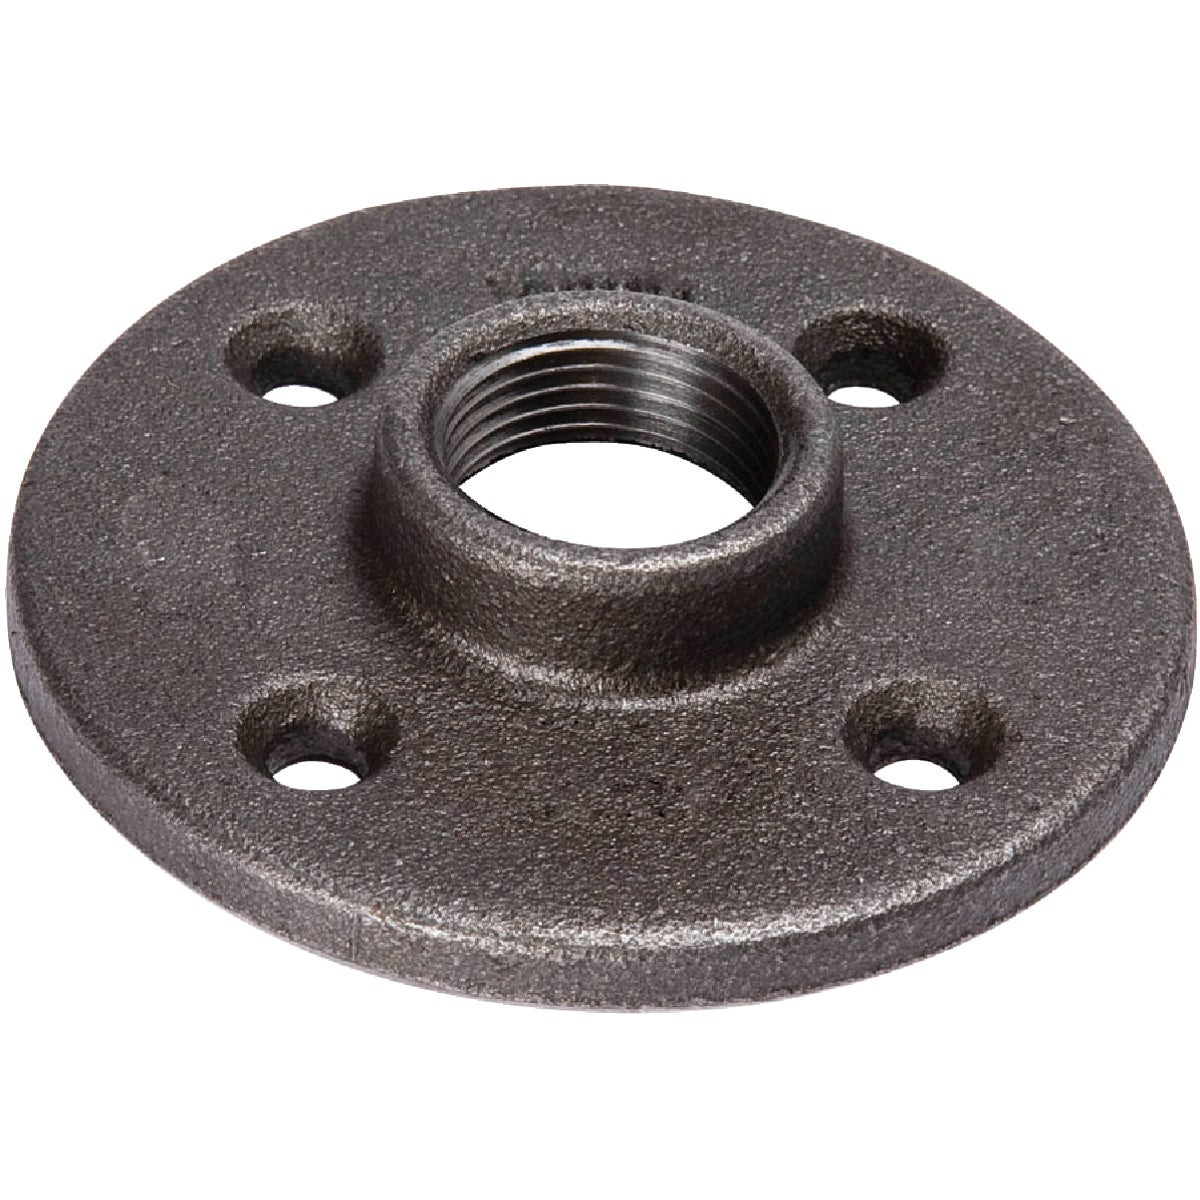 "1-1/2"" BLACK FLANGE - 521-607BG by Mueller B K"